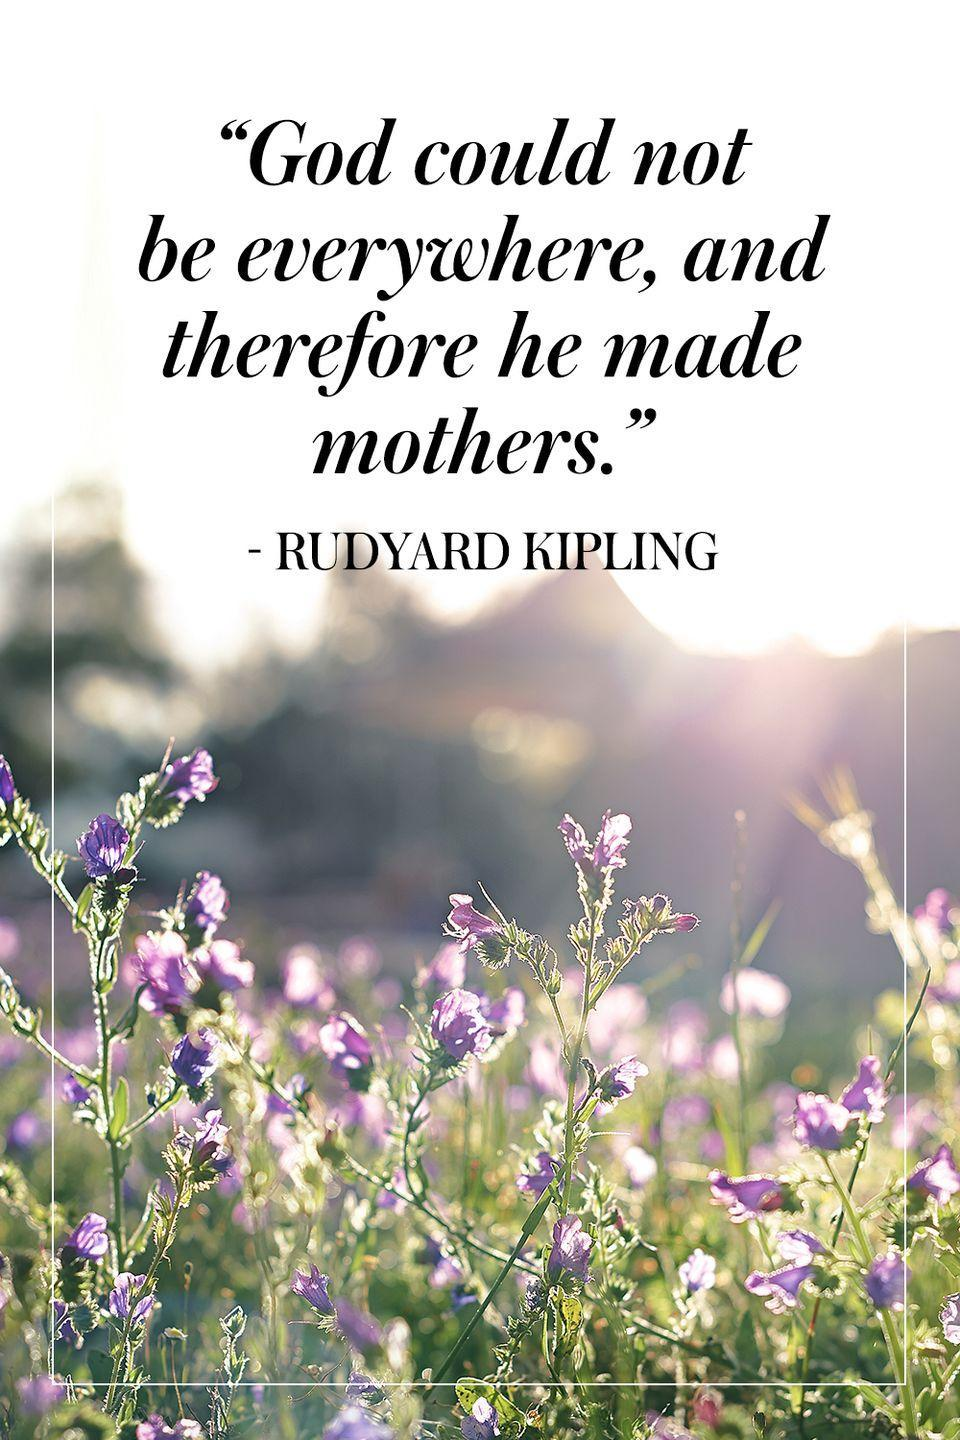 """<p>""""God could not be everywhere, and therefore he made mothers.""""</p><p>- Rudyard Kipling</p>"""